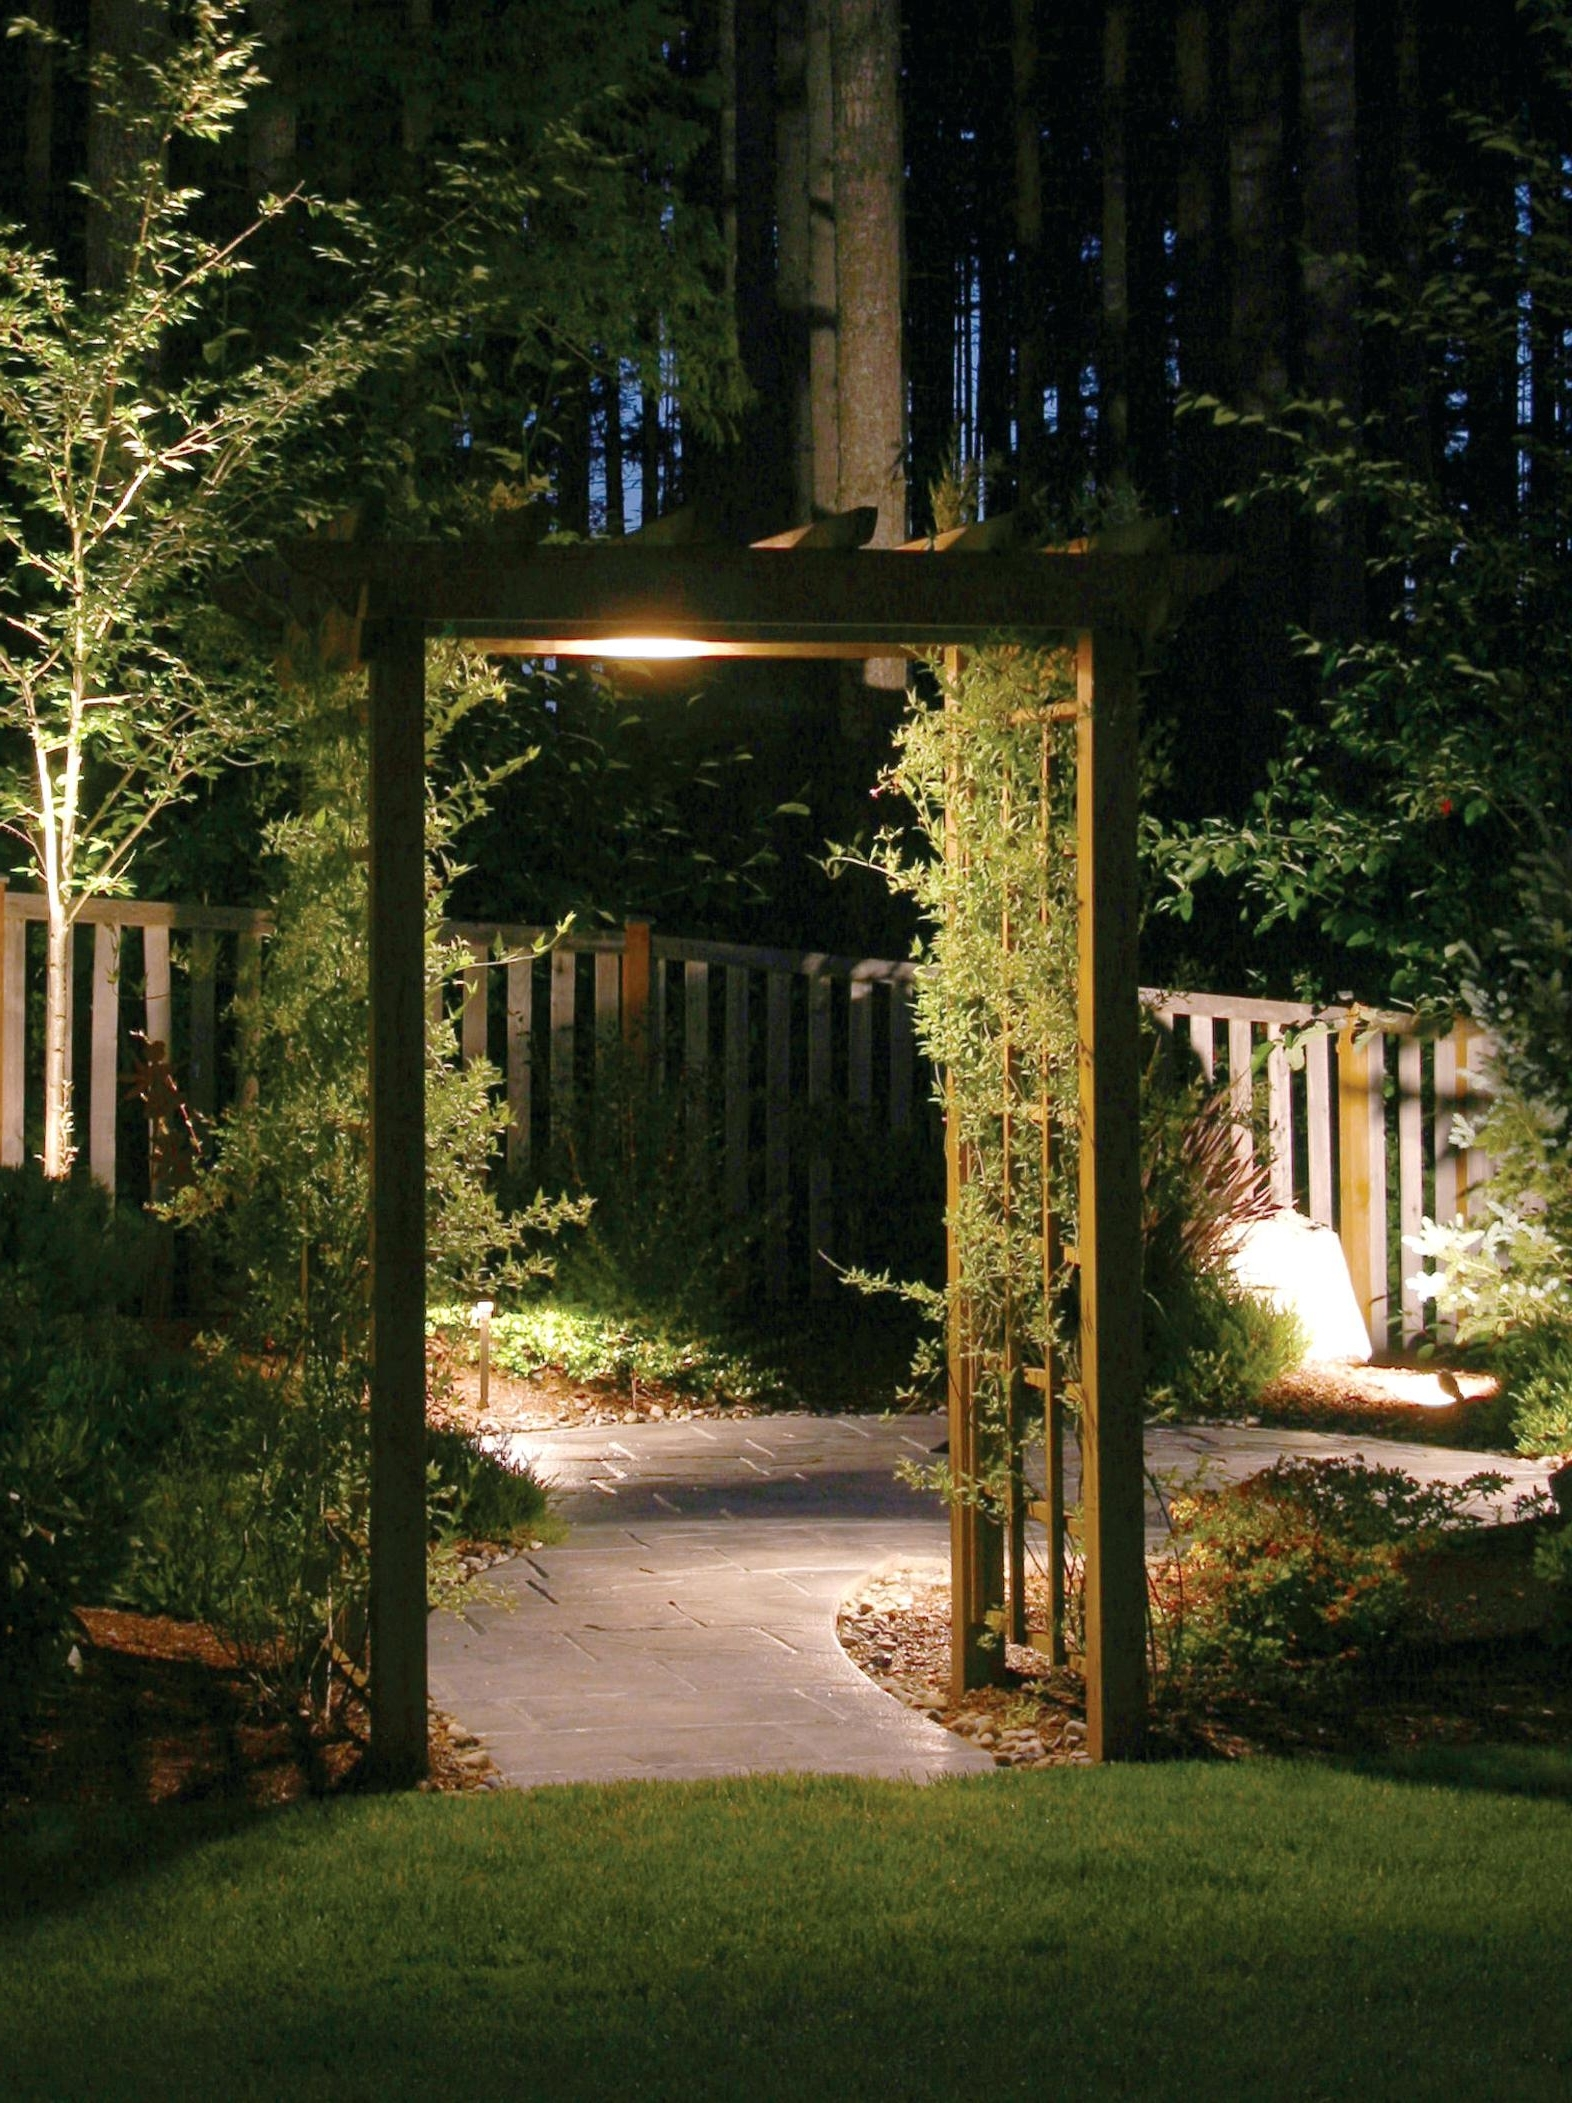 Newest Cheap Outdoor Lights String Argos Lighting For Weddings Throughout Outdoor Lanterns At Argos (View 20 of 20)